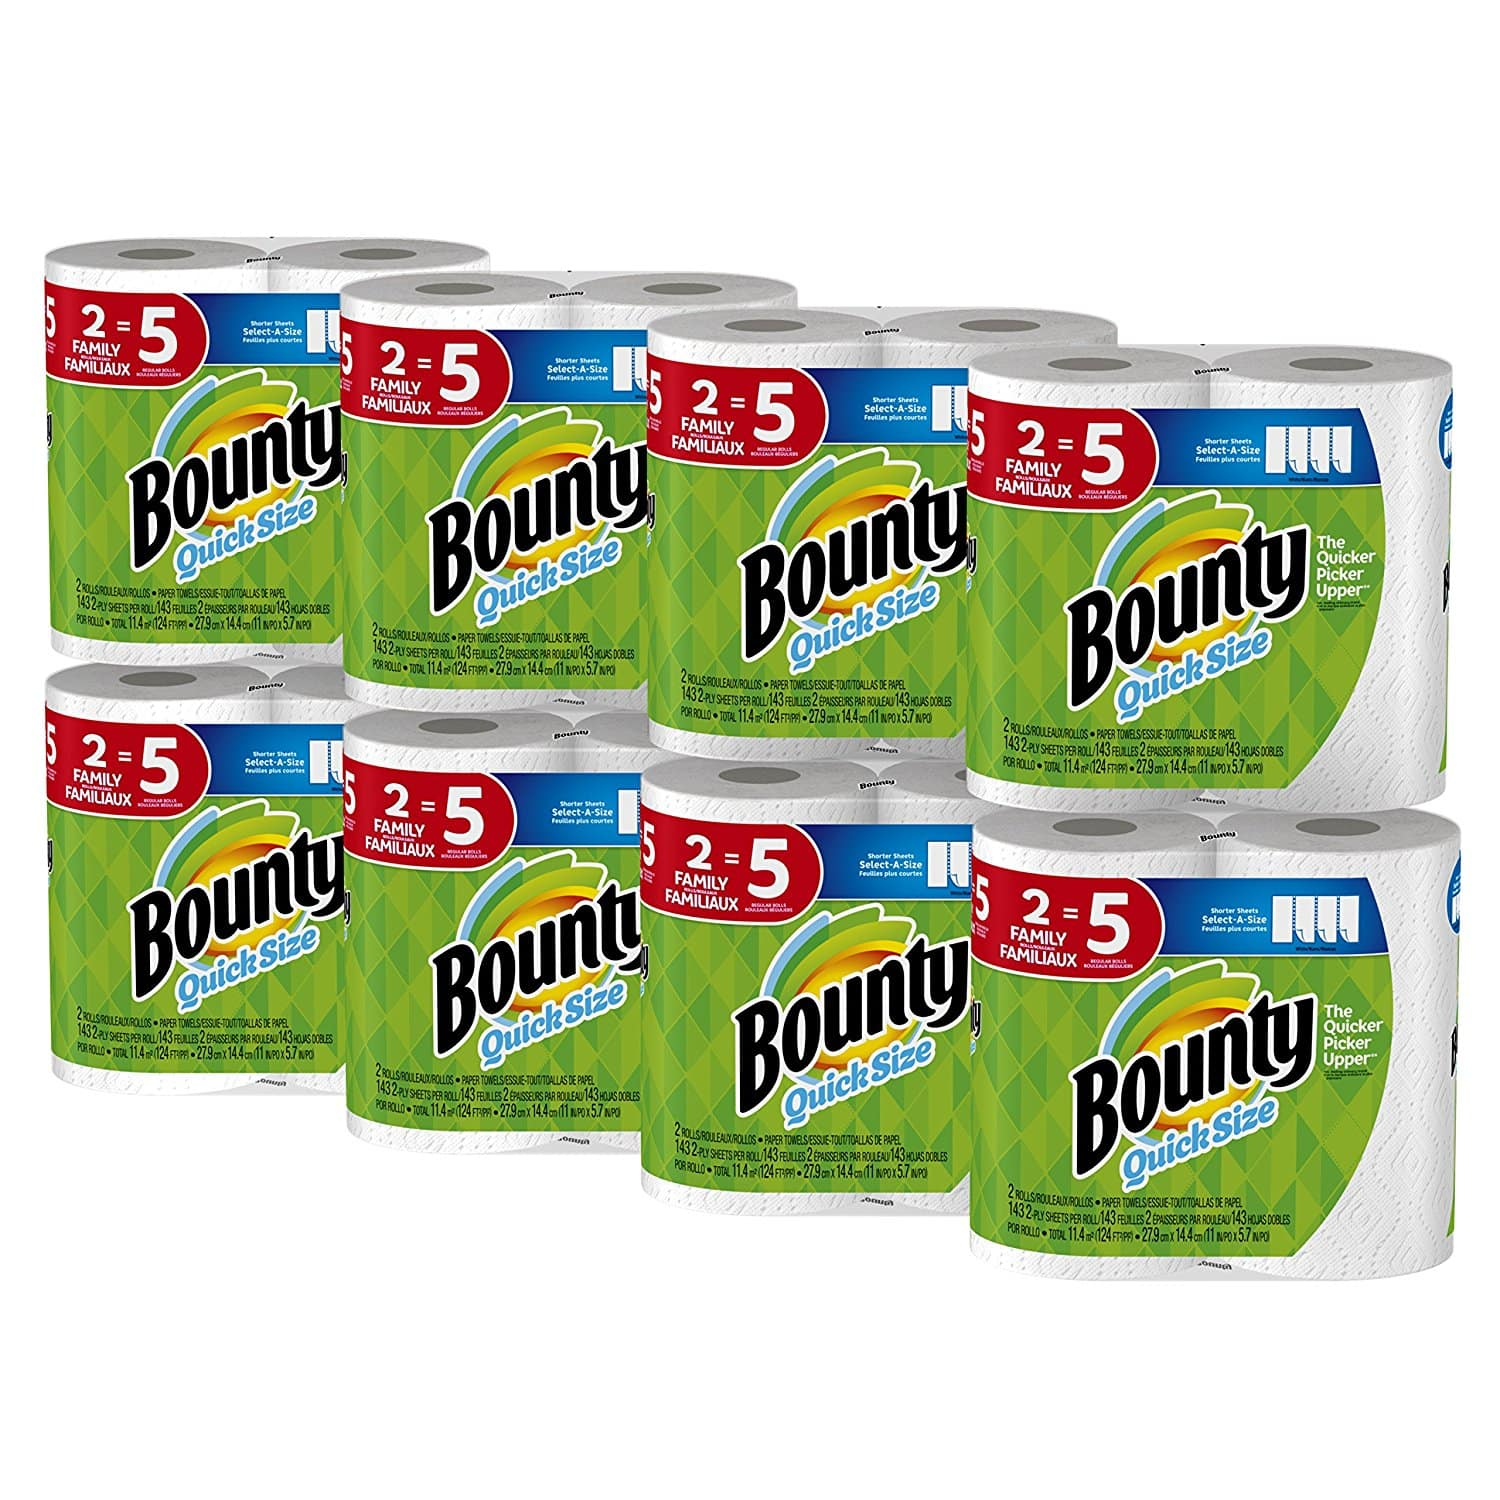 Bounty Quick-Size Paper Towels, 16 Family Rolls, White with CODE: 5QUICKBOUNTY $25.14